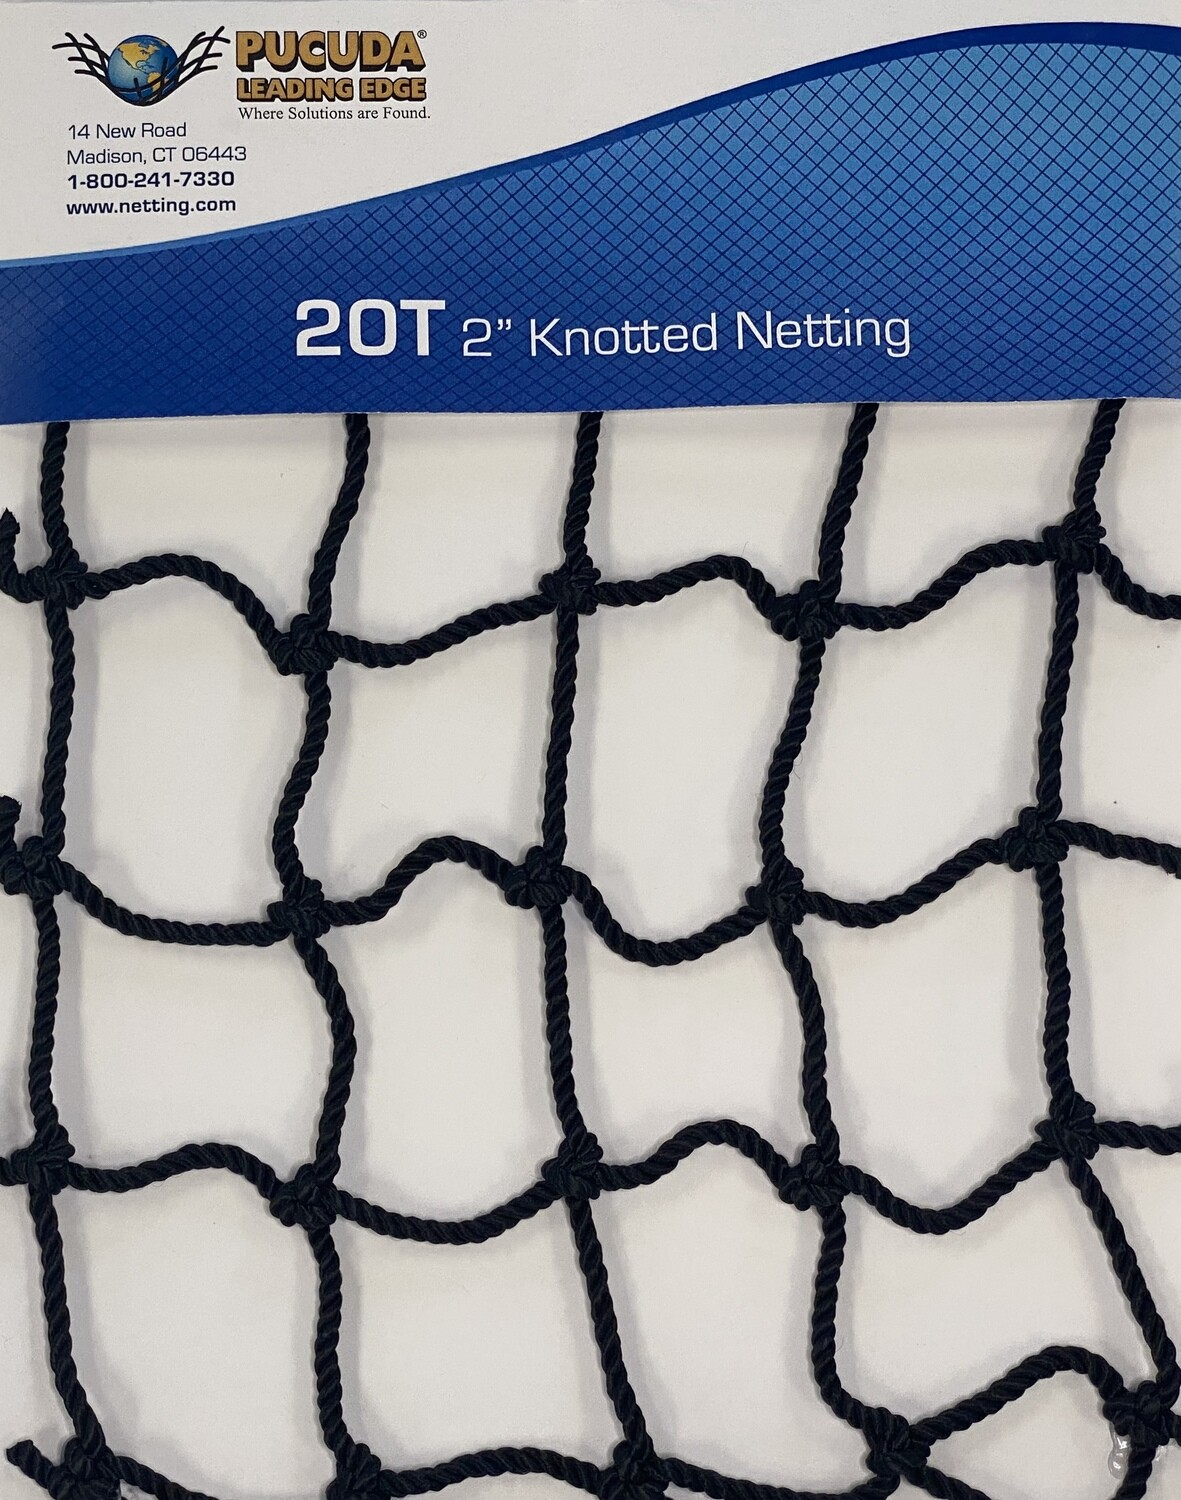 """20T 2"""" Knotted Netting"""